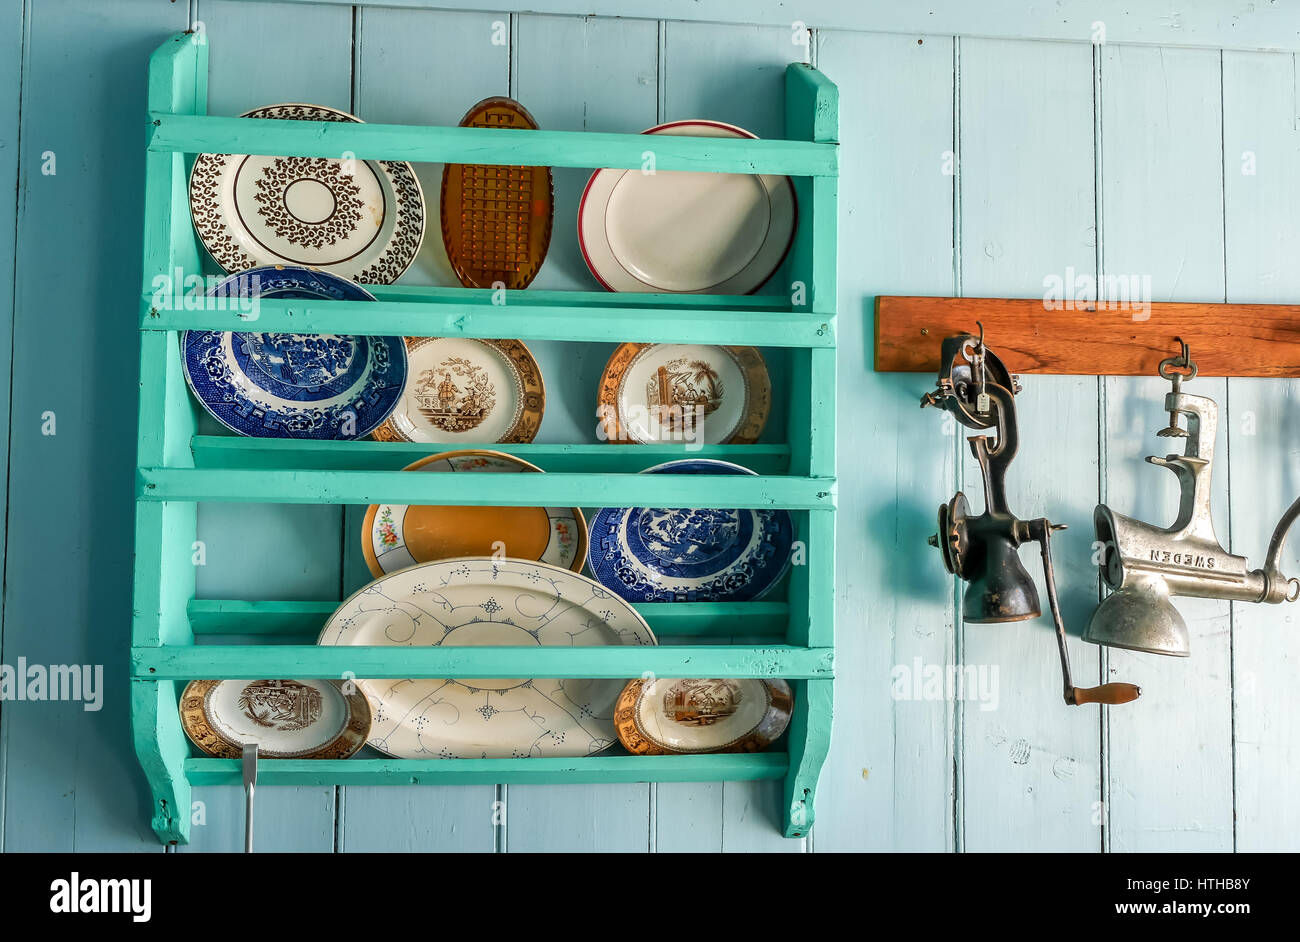 Wall with vintage kitchen equipment, plate rack and utensils in oldest wooden house in Iceland, Skogar Folk Museum - Stock Image